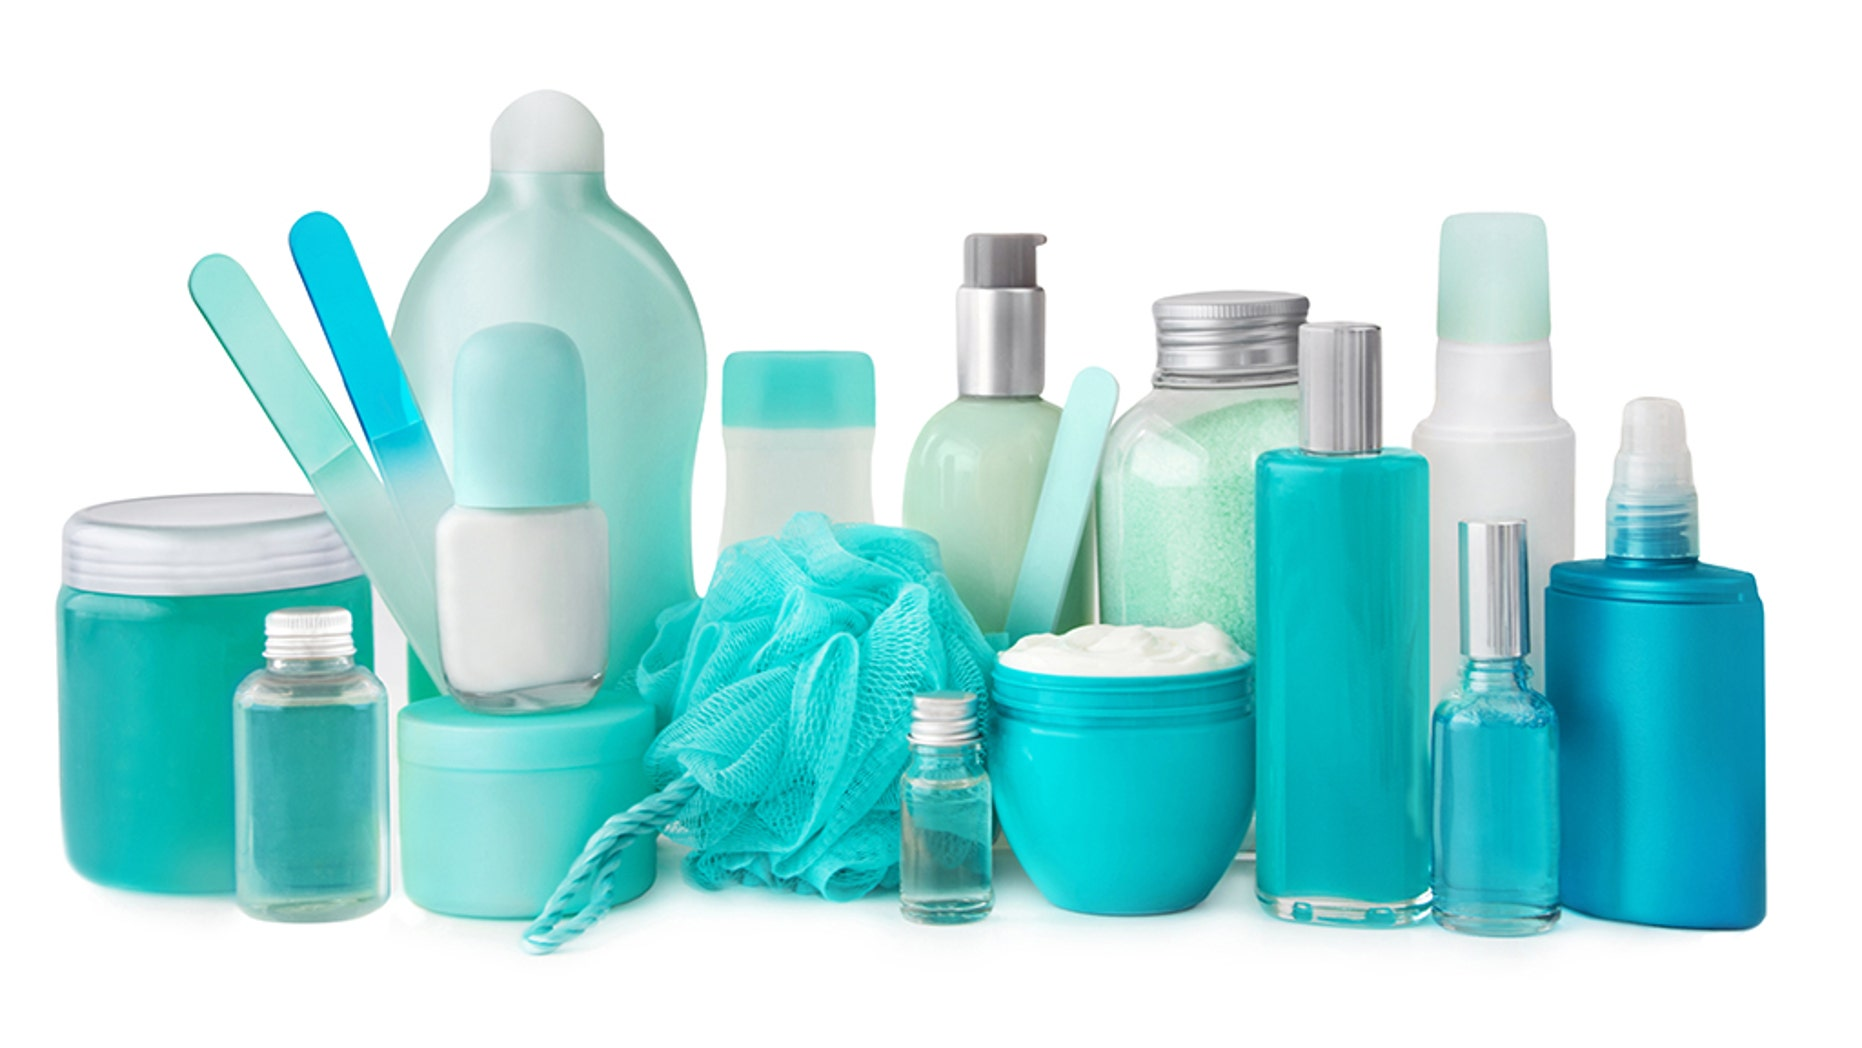 Per a original look, certain chemical substances display in personal care products might perchance perchance presumably make a contribution to ladies hitting puberty earlier.